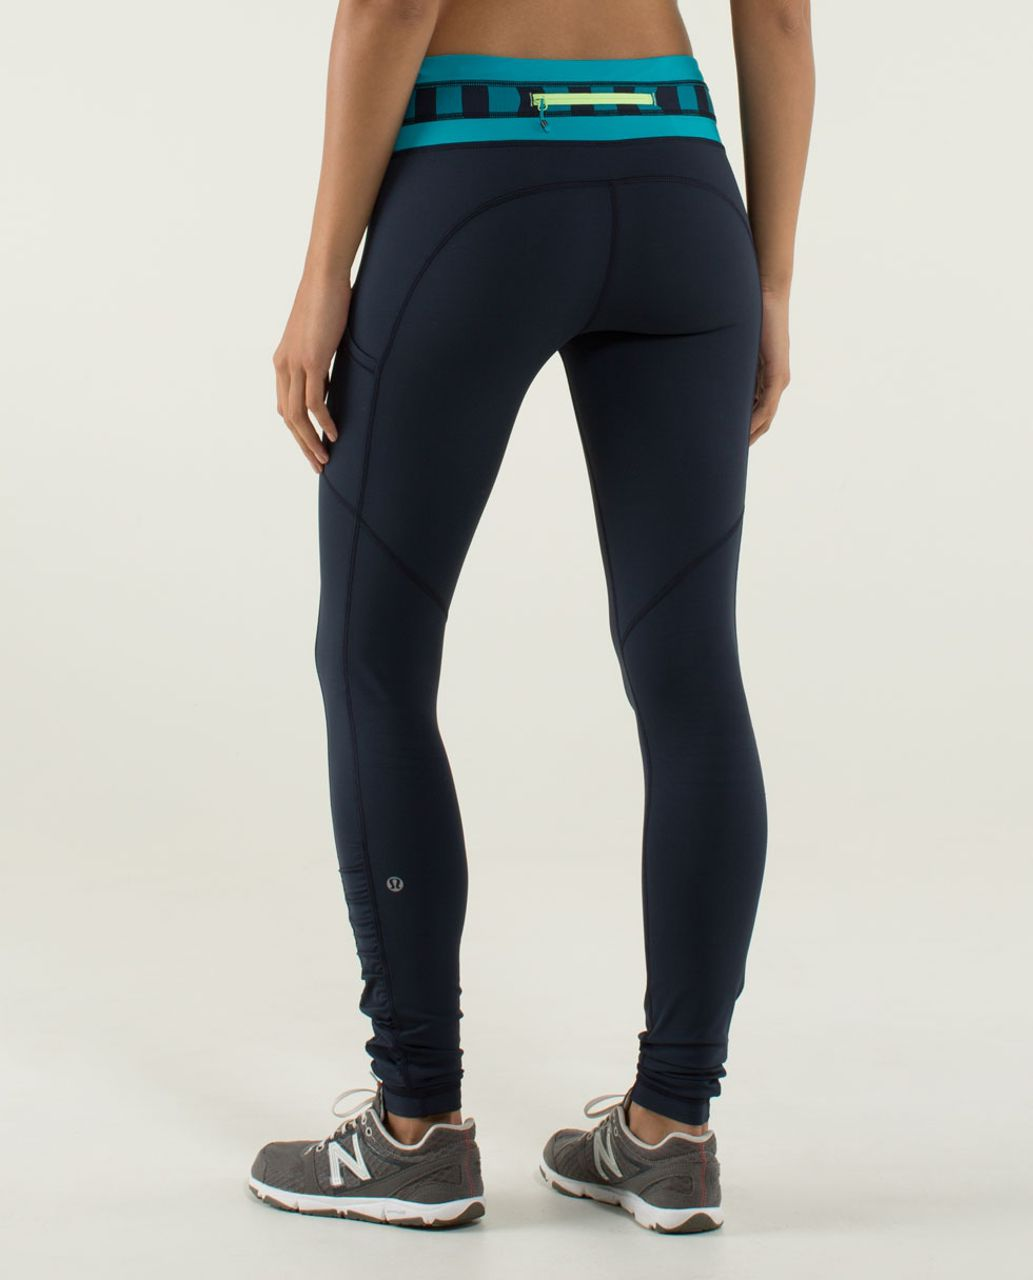 Lululemon Speed Tight *Brushed Interlock - Inkwell / Quilt Winter 13-27